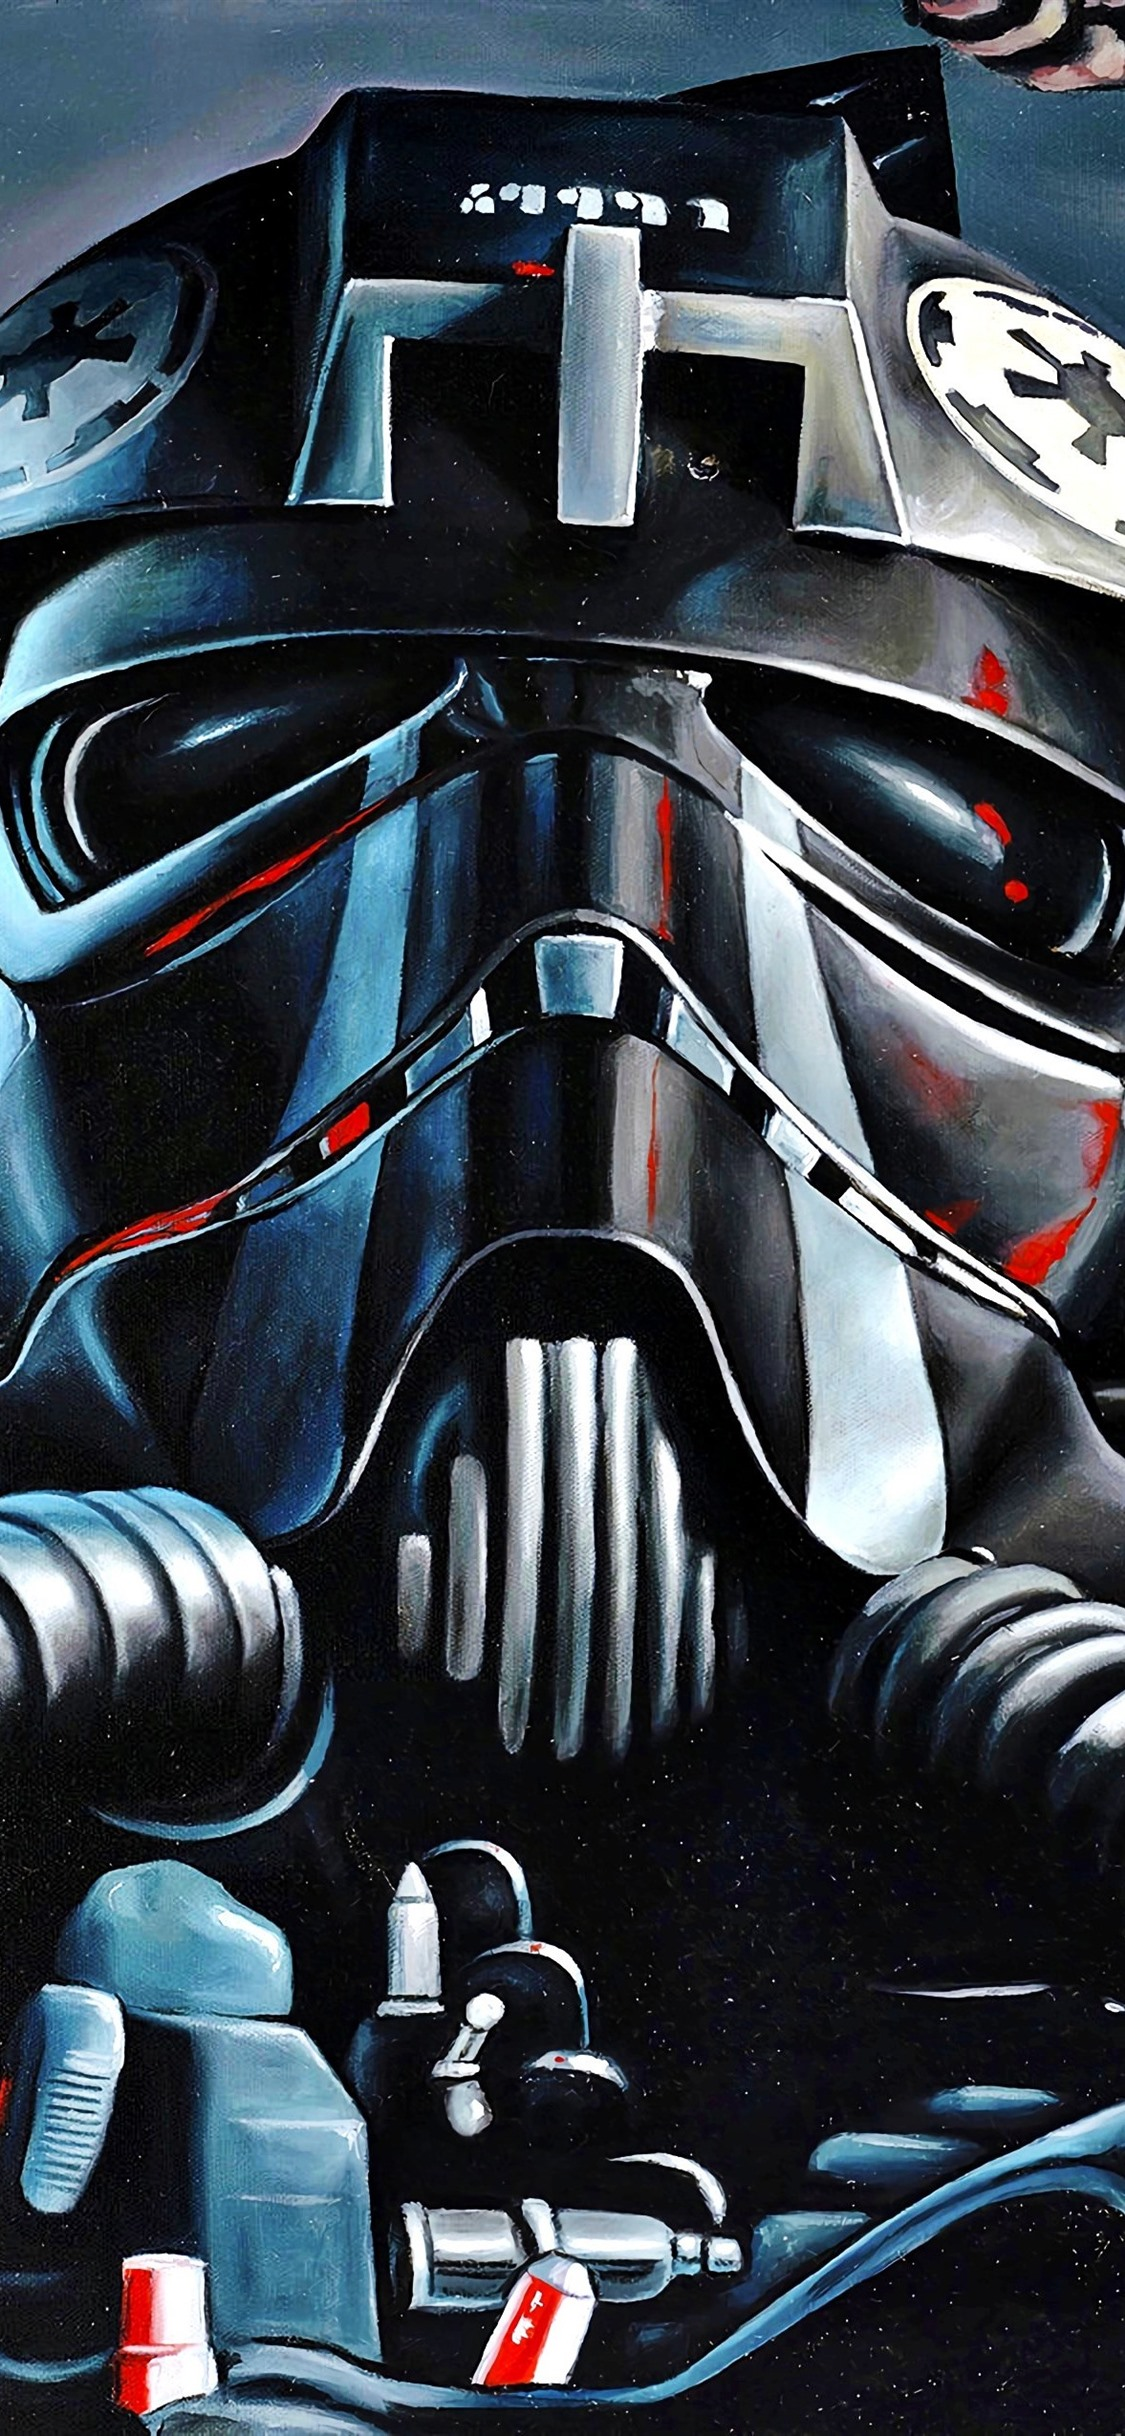 Star Wars Art Picture Pilot 1125x2436 Iphone 11 Pro Xs X Wallpaper Background Picture Image